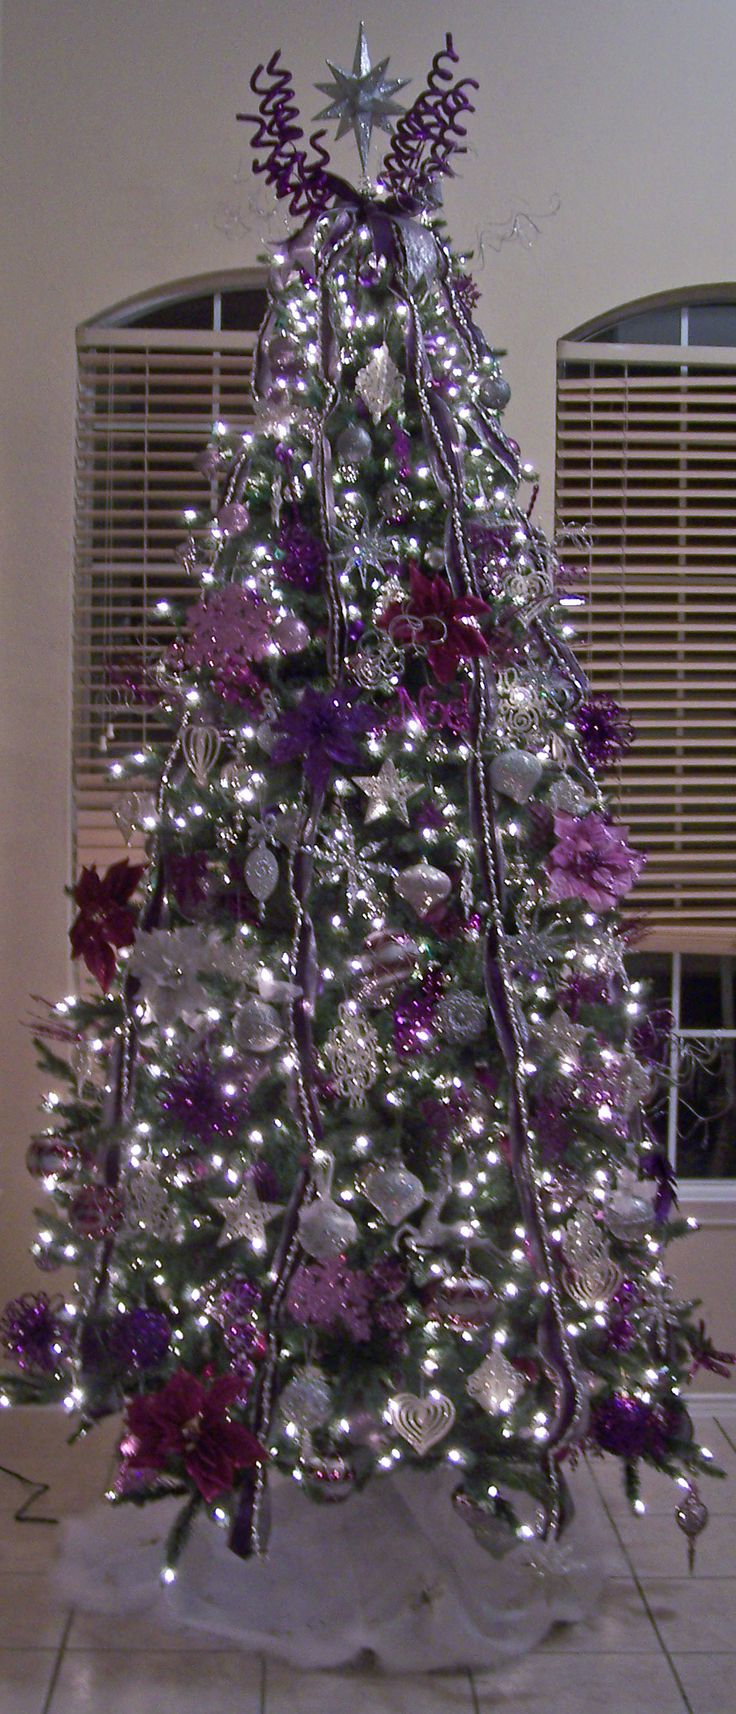 purple and silver | Christmas Trees... Geez | Pinterest